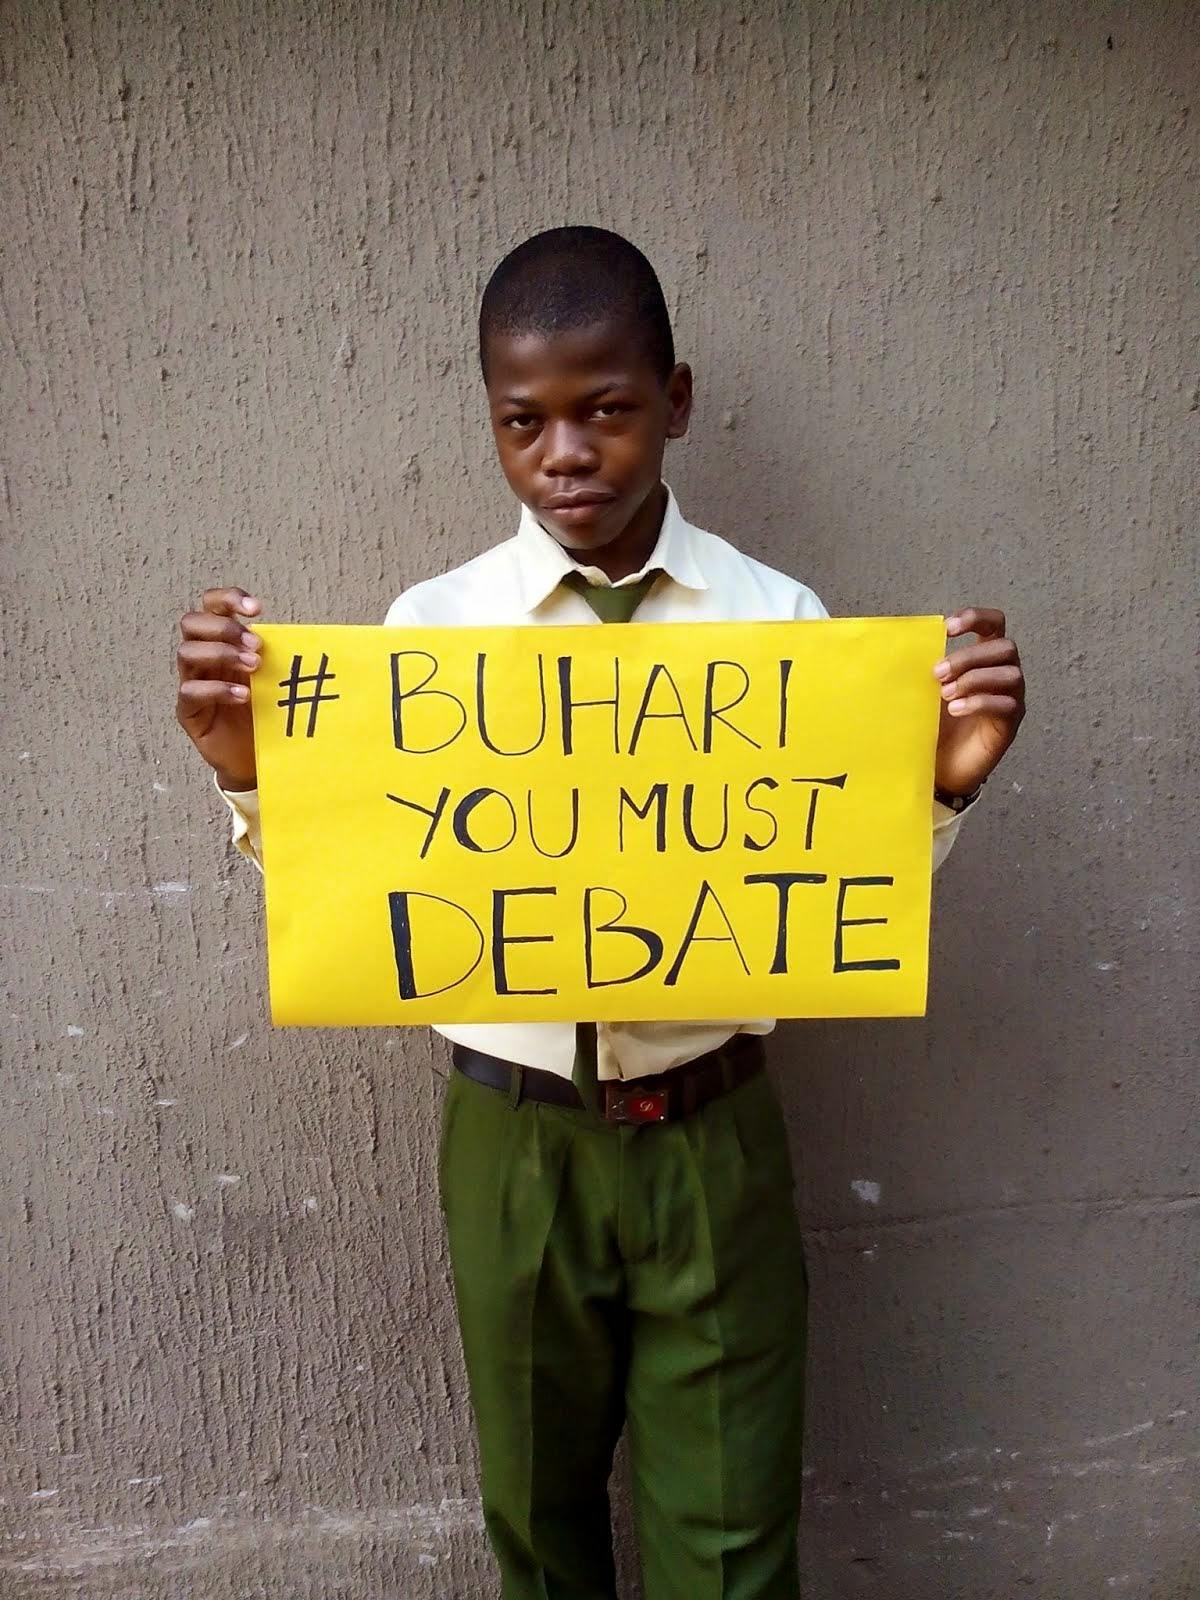 BUHARI MUST DEBATE